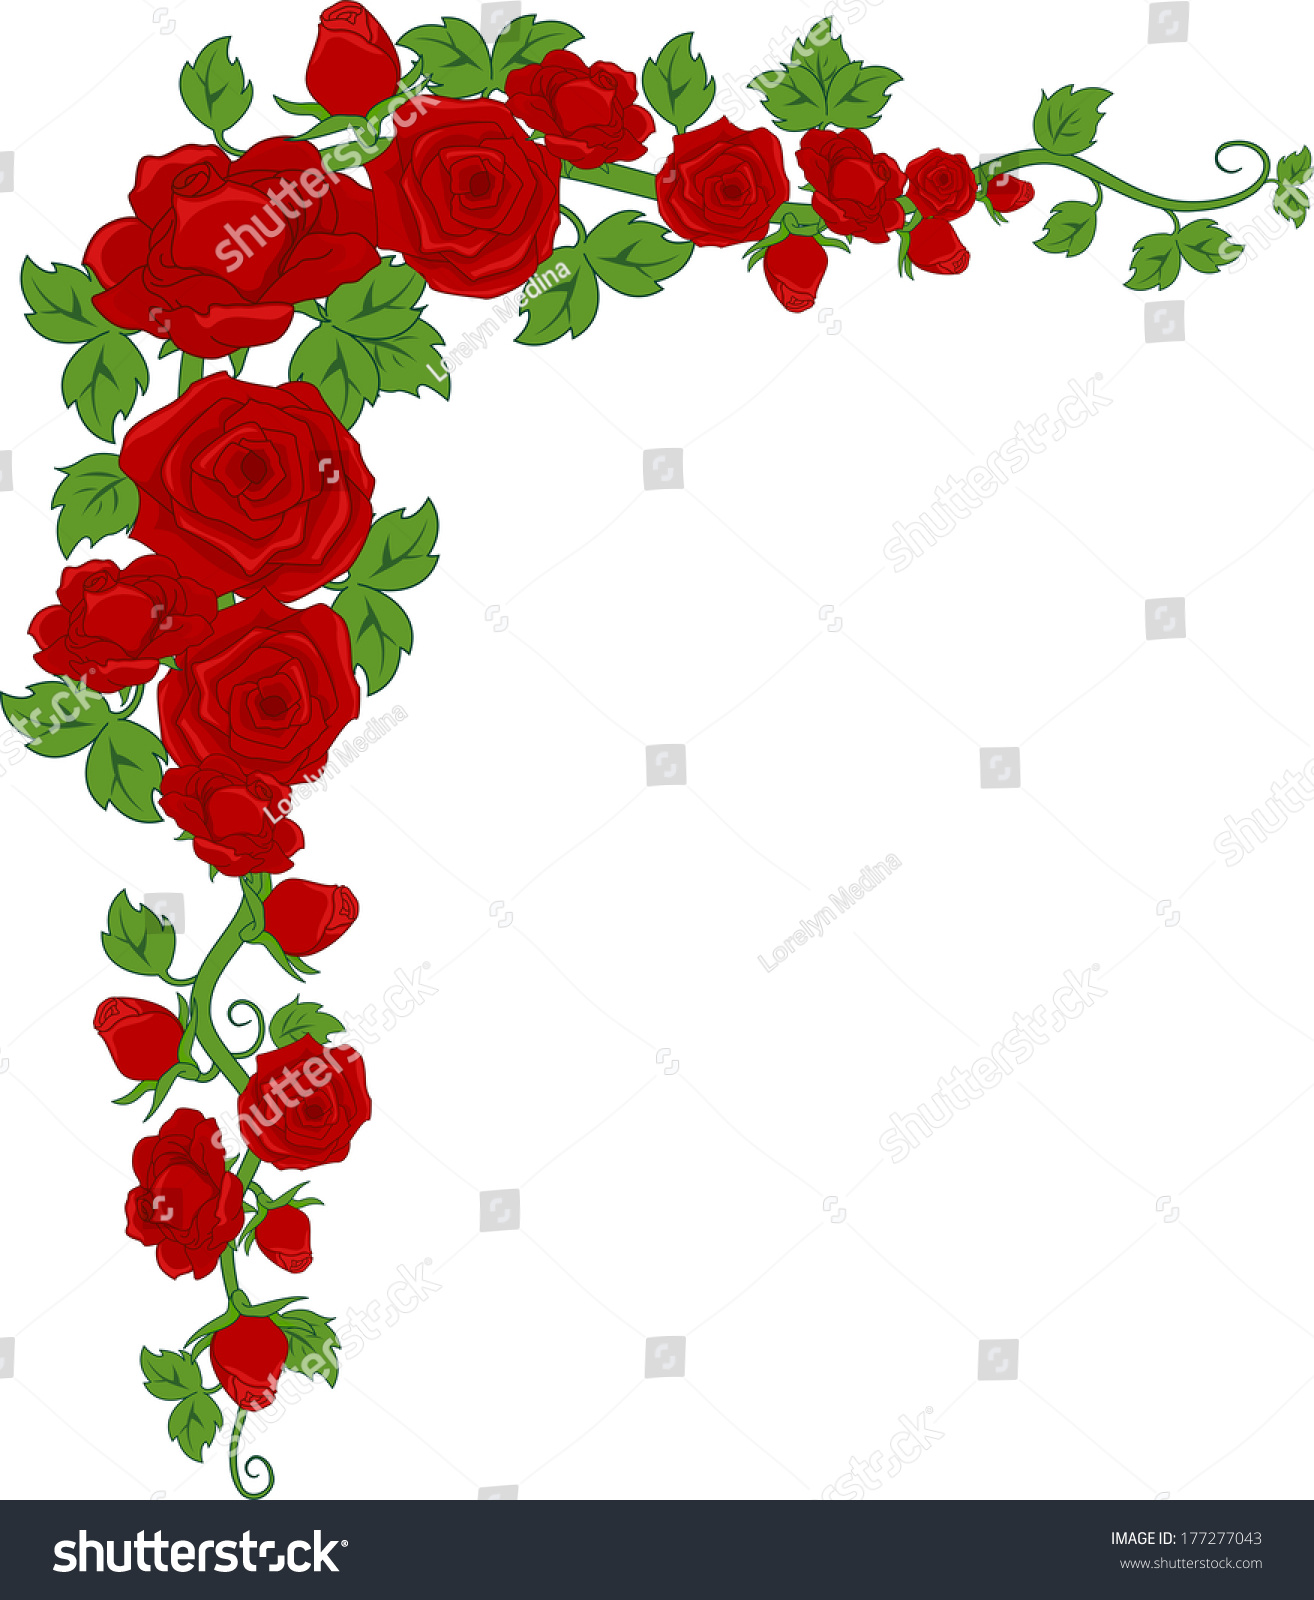 Transparent Beautiful Red Rose   Picture also Pinkweddinginvitations blogspot furthermore Clip Racing Cars as well Black 20rose 20clip 20art likewise Birthday Greetings Facebook. on kentucky derby graphic design